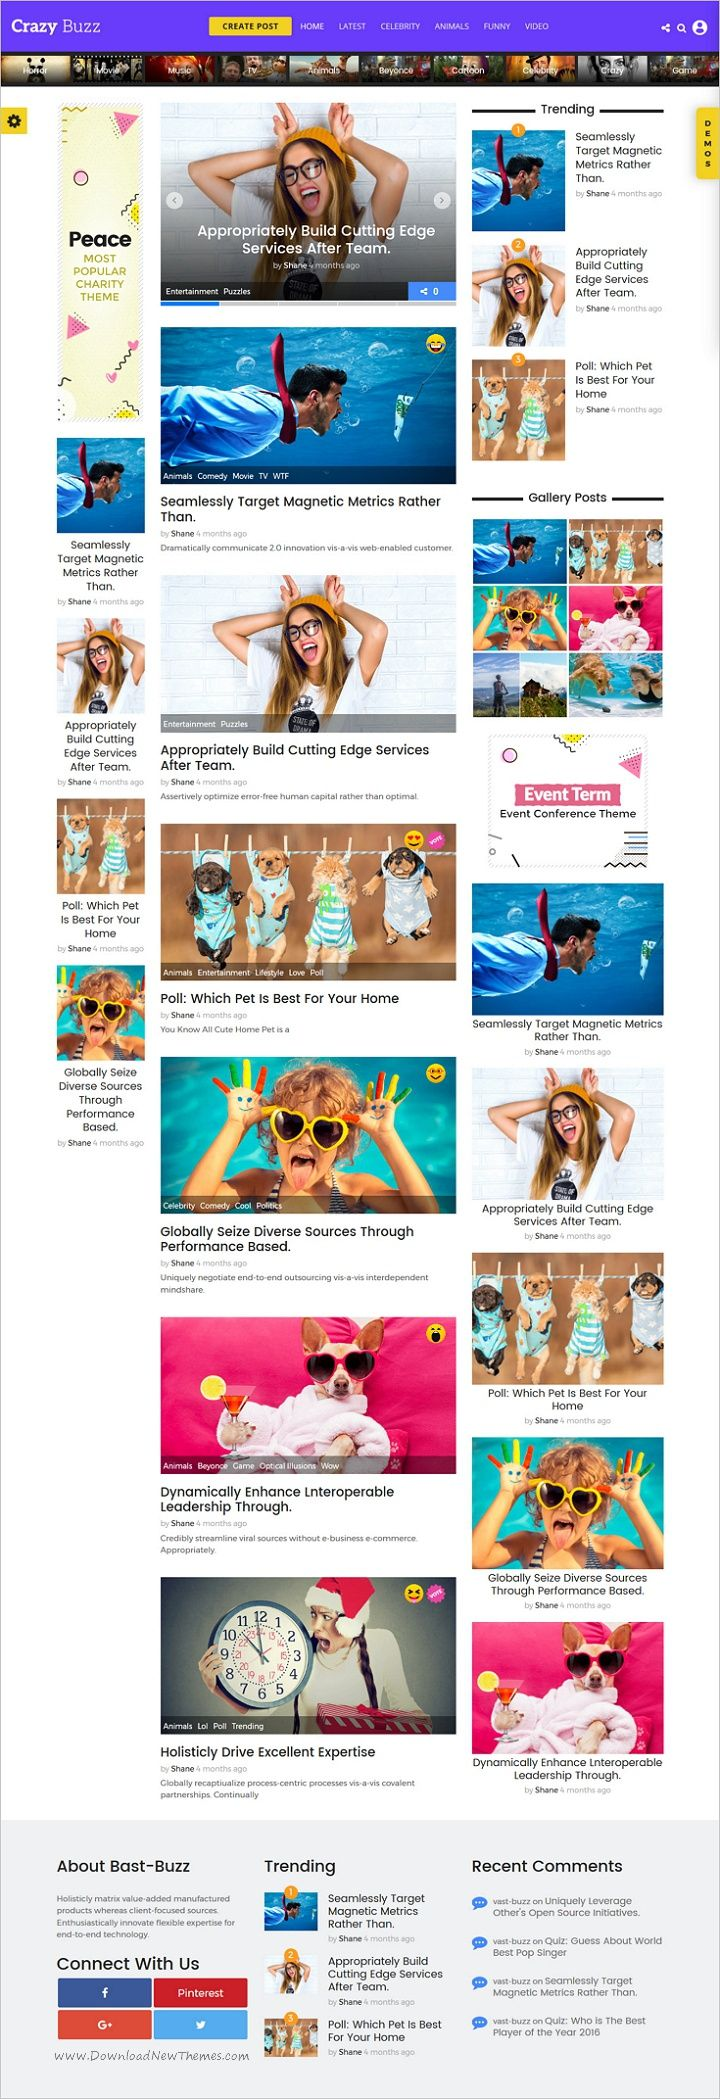 Vast buzz is unique, modern and flat design #WordPress theme for viral #news and #magazine websites with 9 homepage layouts to create list, meme, quiz, pool, video, audio, gallery news easily download now➩  https://themeforest.net/item/vast-buzz-viral-buzz-wordpress-theme/19287621?ref=Datasata